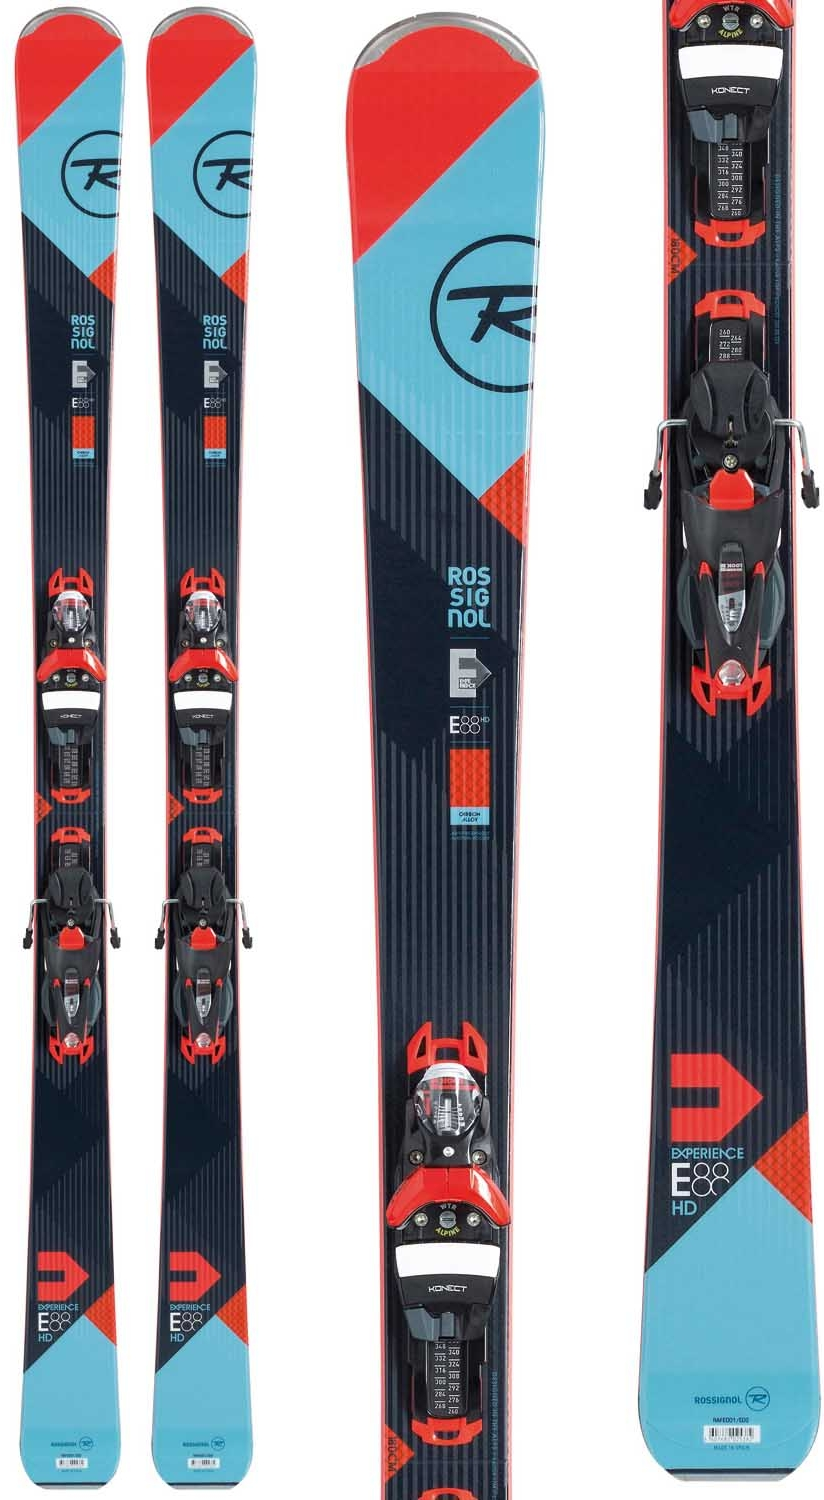 Rossignol Experience 88 HD (Konect), $899.95